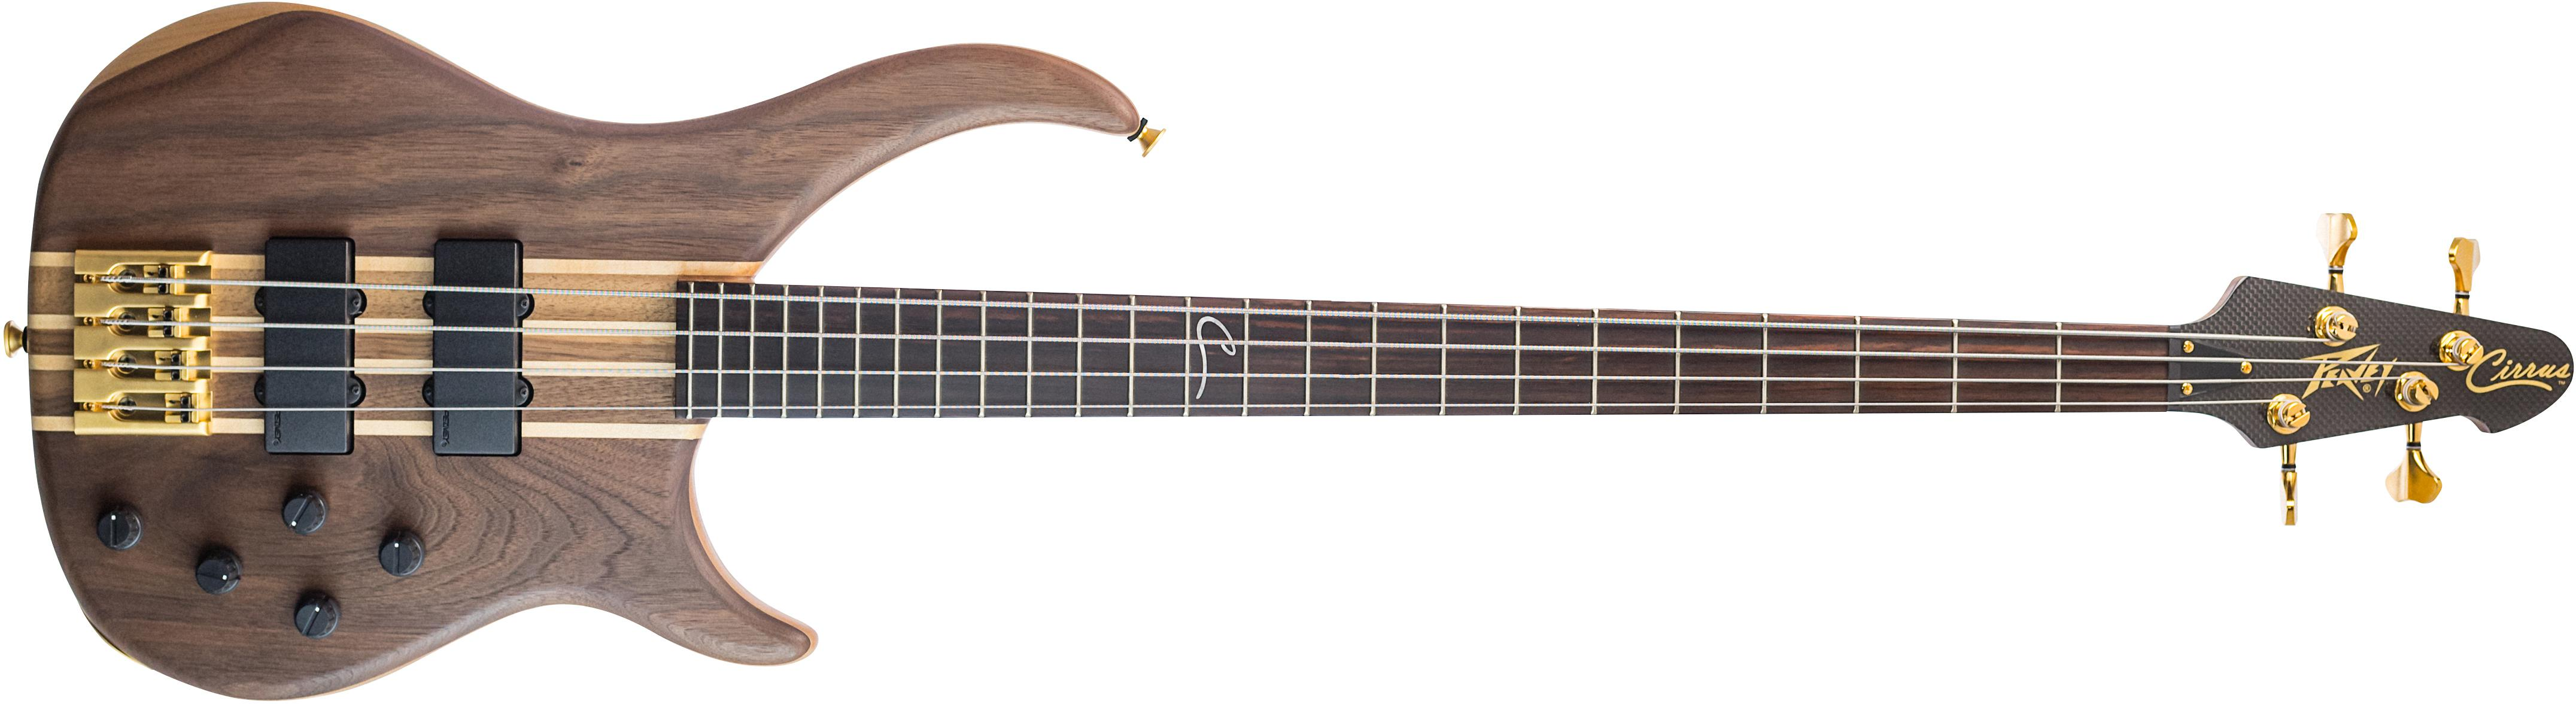 p bass body dimensions 2002 nissan sentra stereo wiring diagram guitars peavey cirrus trade 4 walnut